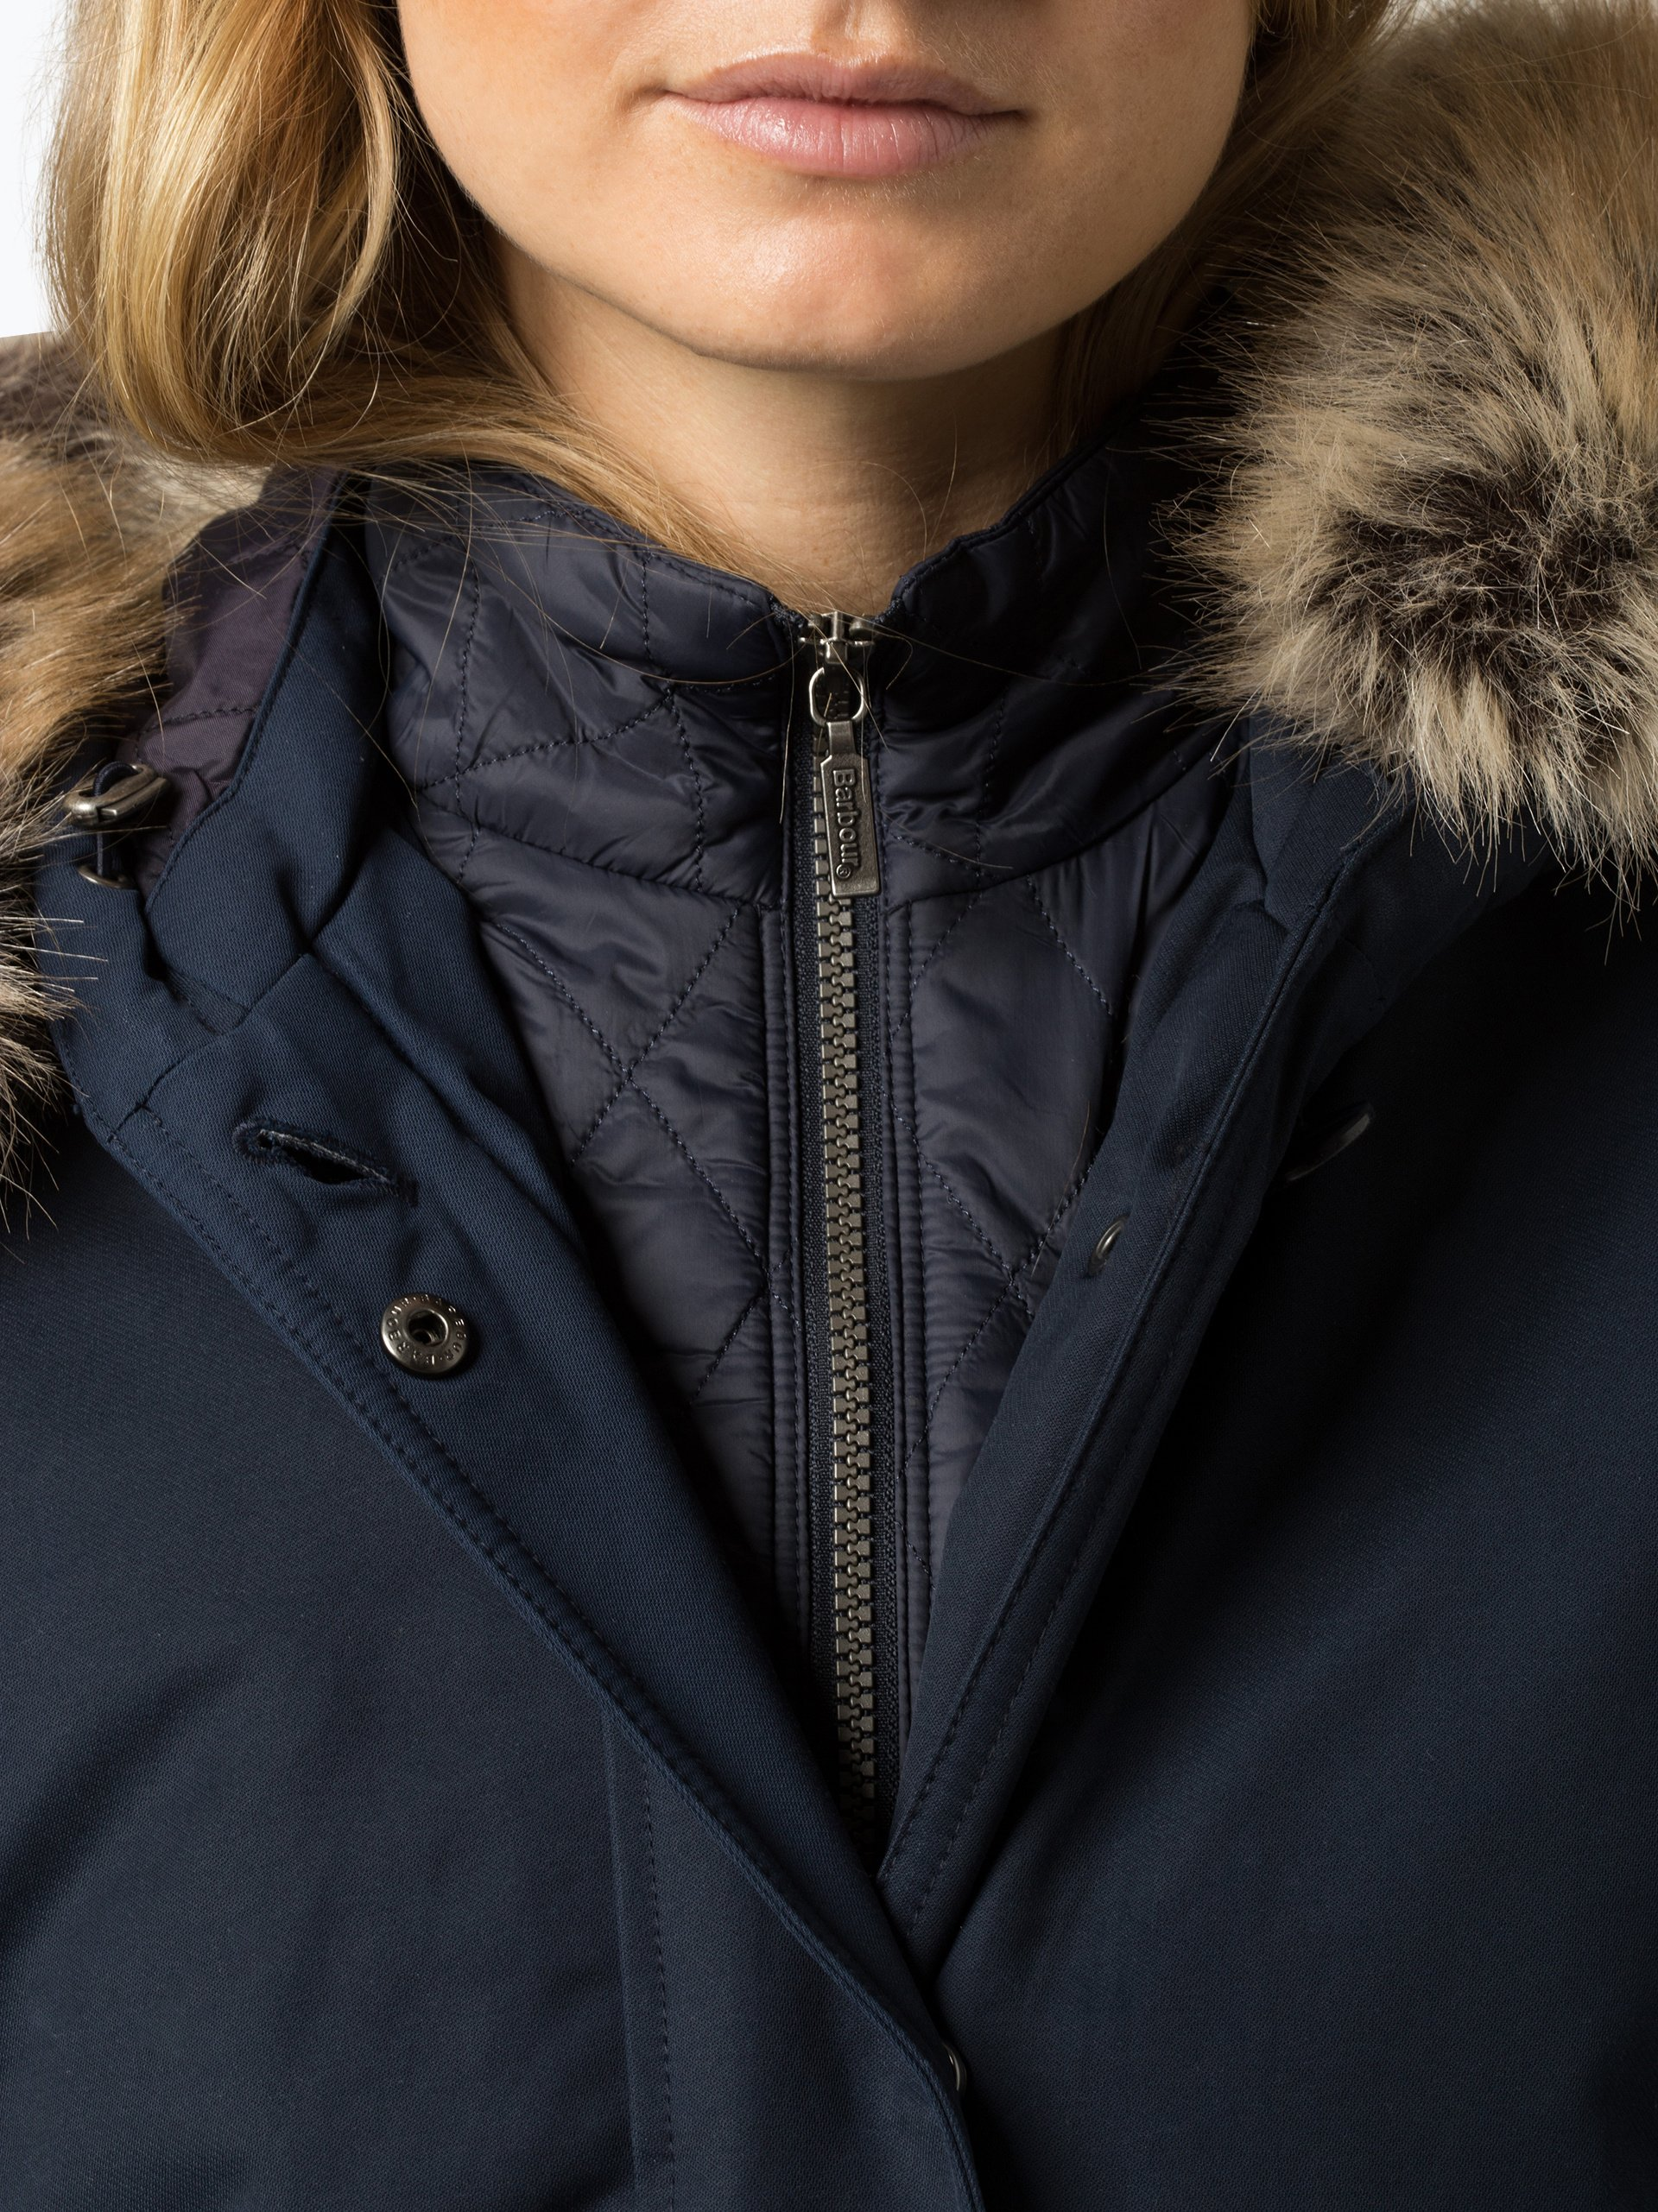 Barbour Damen Funktionsjacke - Argyll